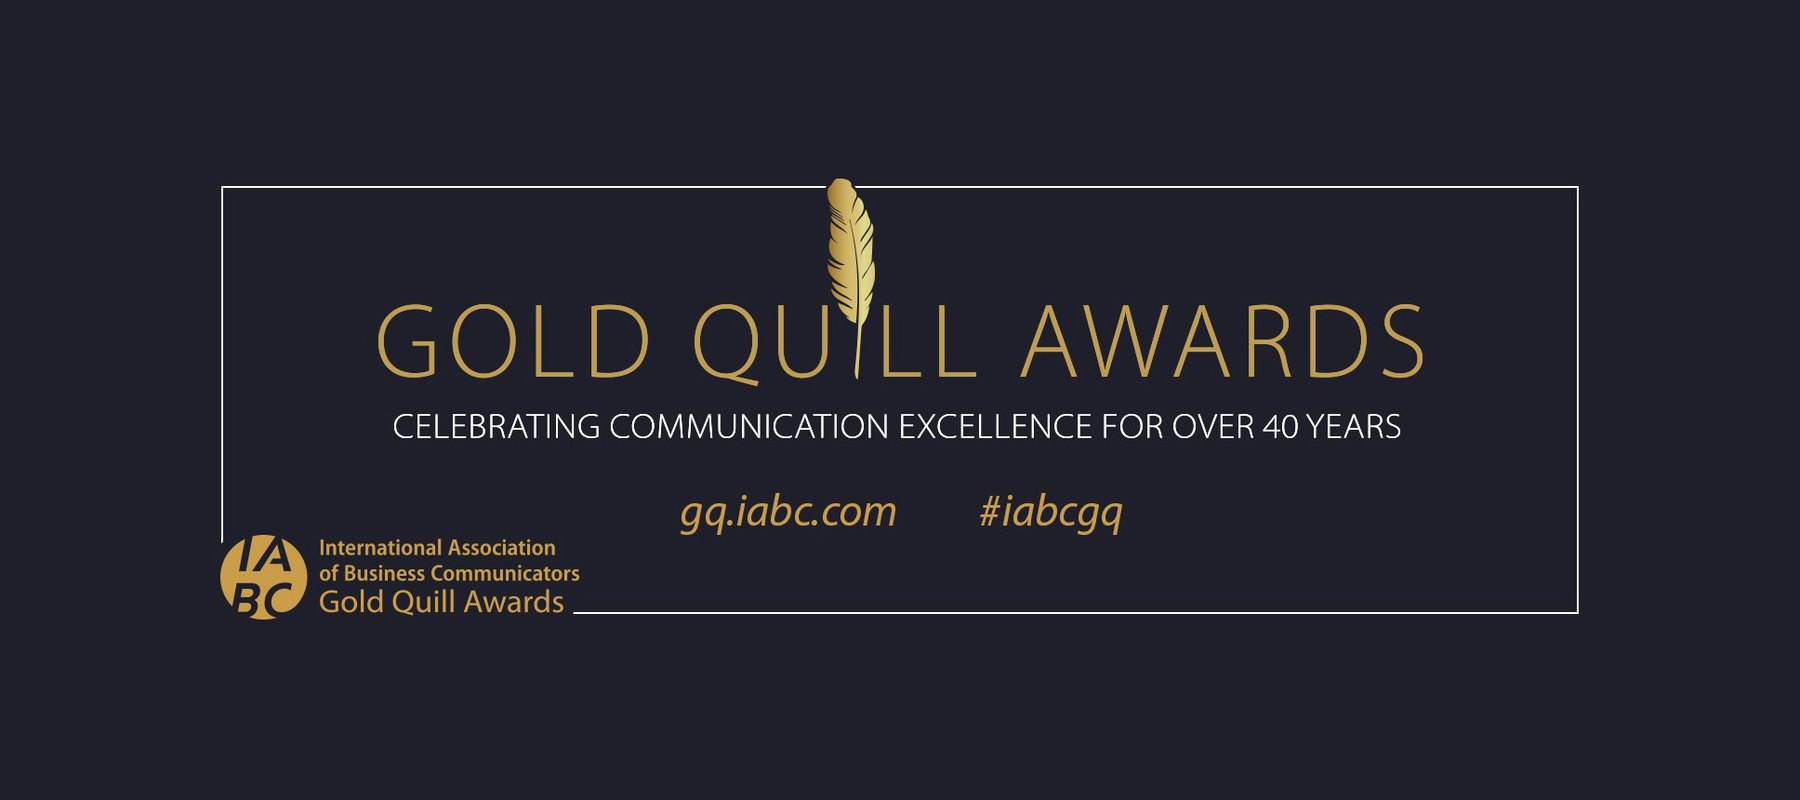 Gold Quill Image (002).jpg